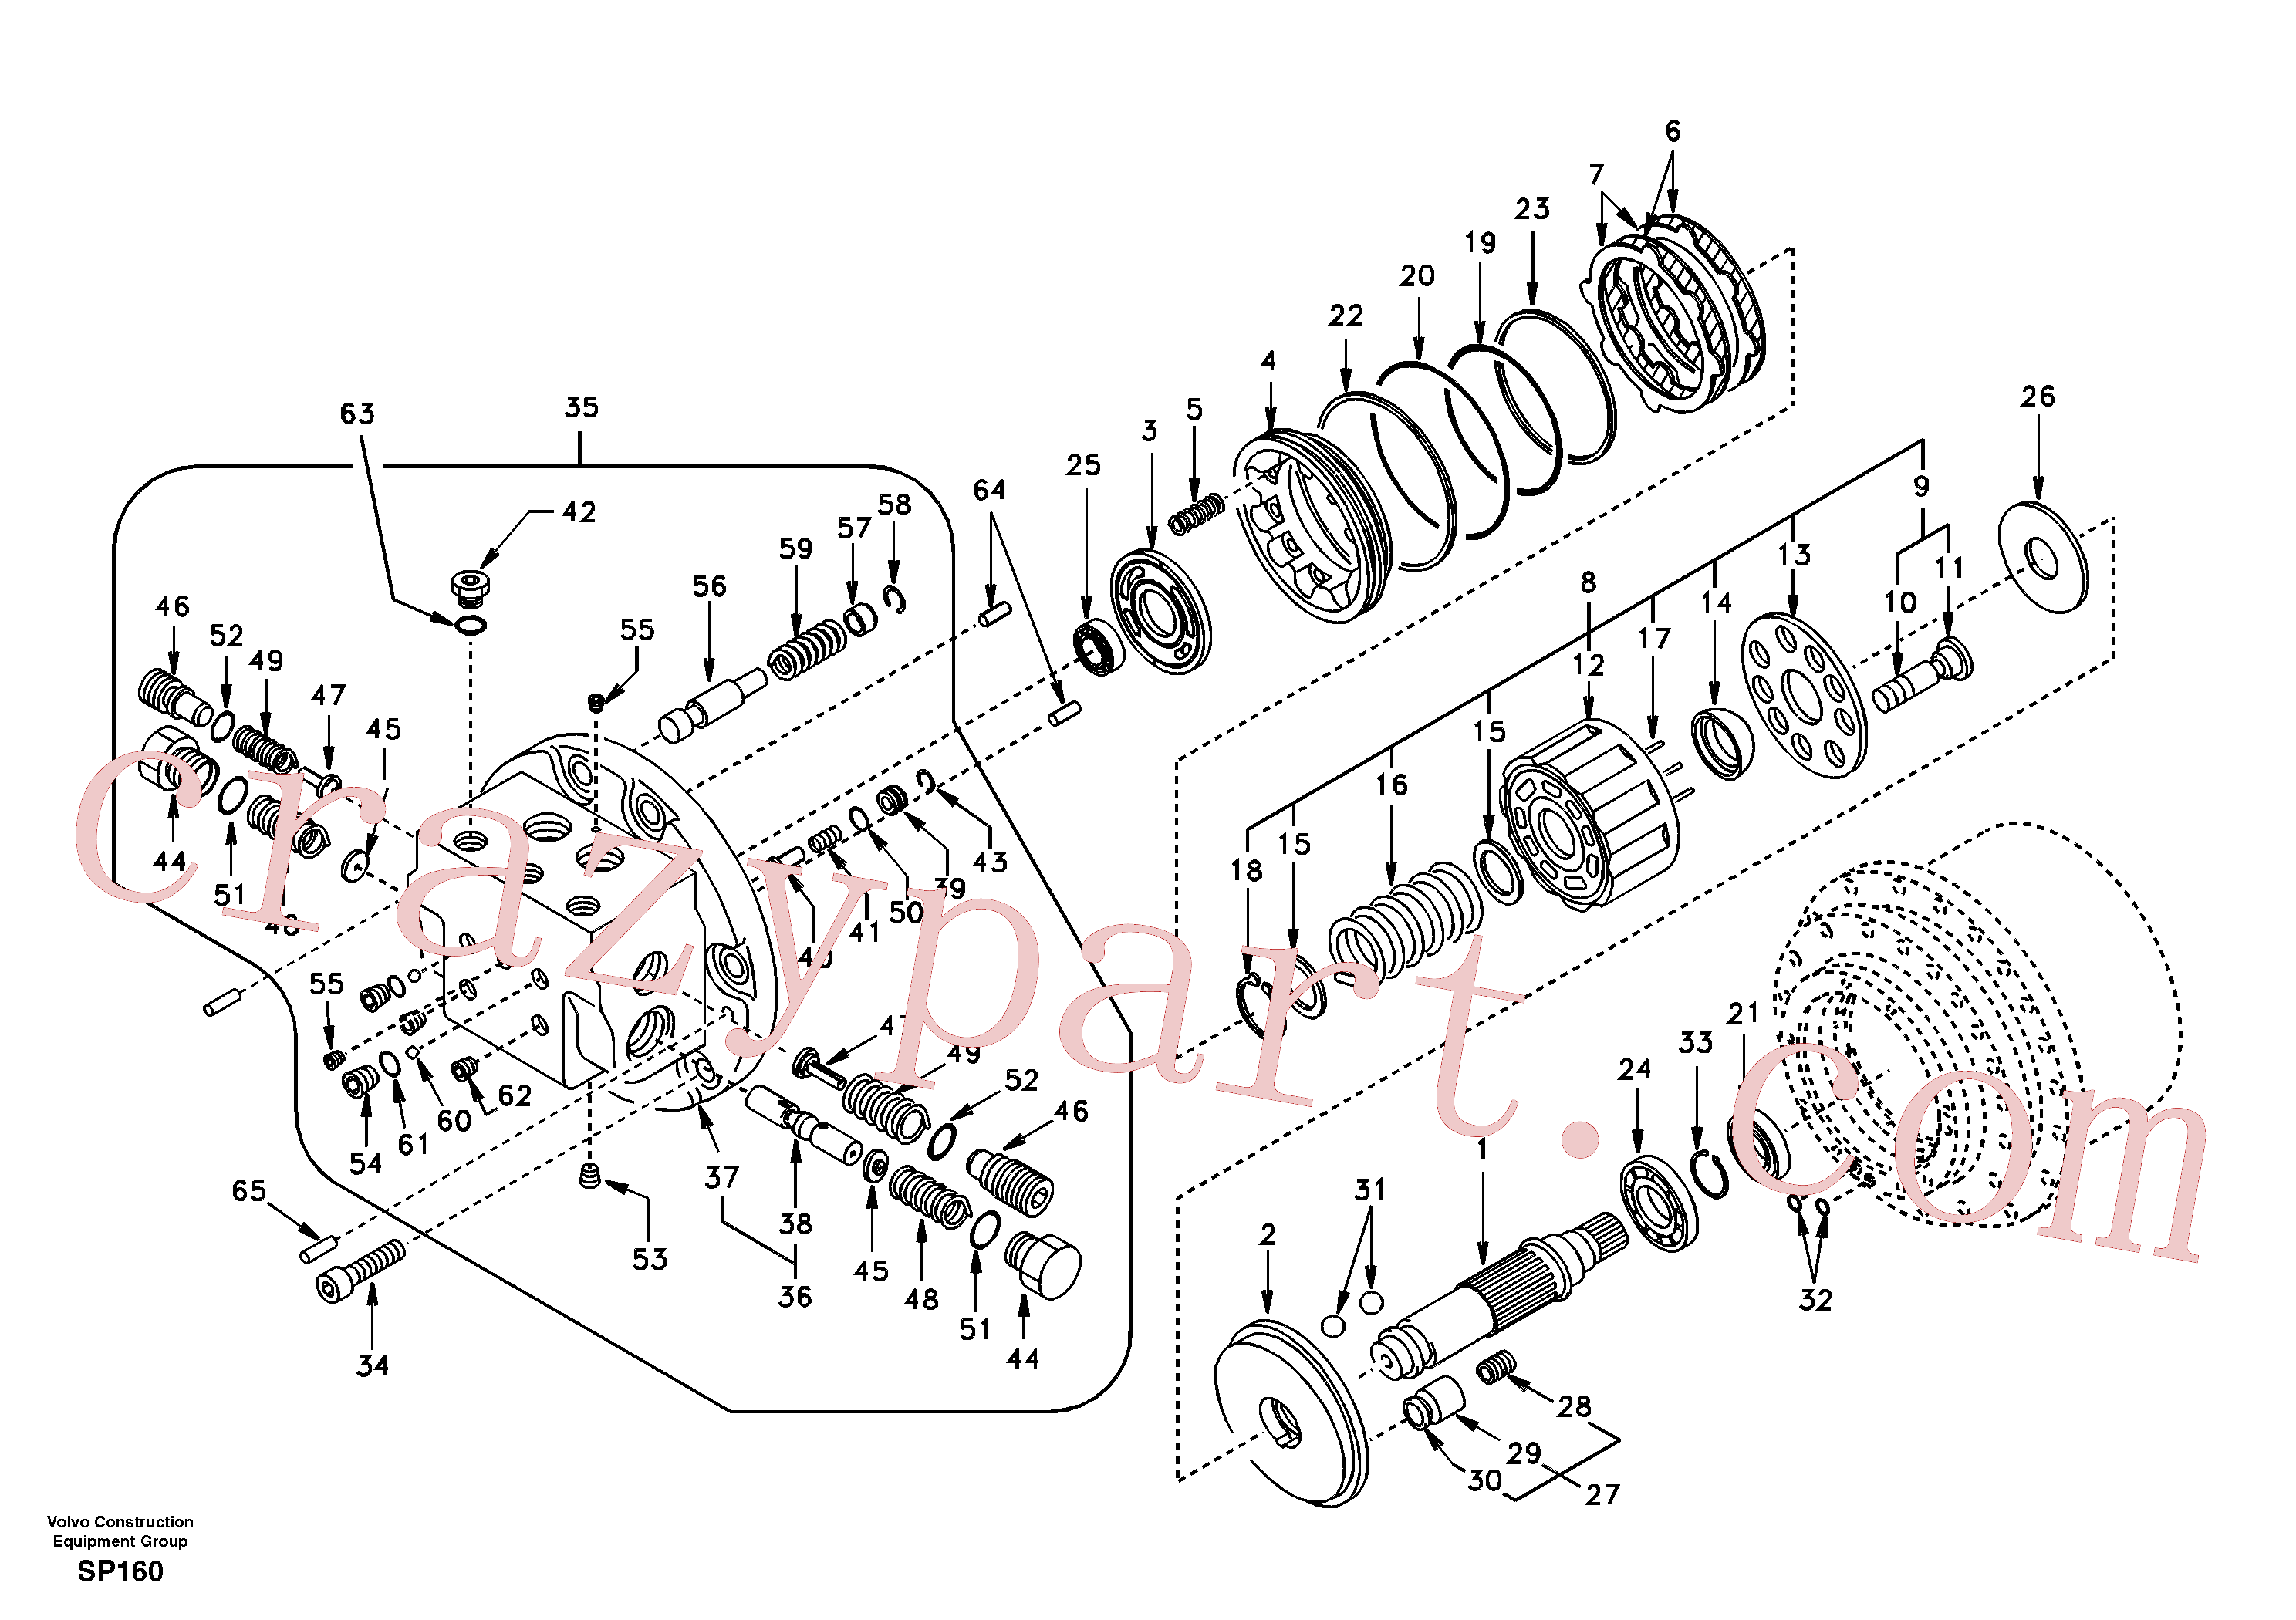 SA8230-10010 for Volvo Travel motor(SP160 assembly)